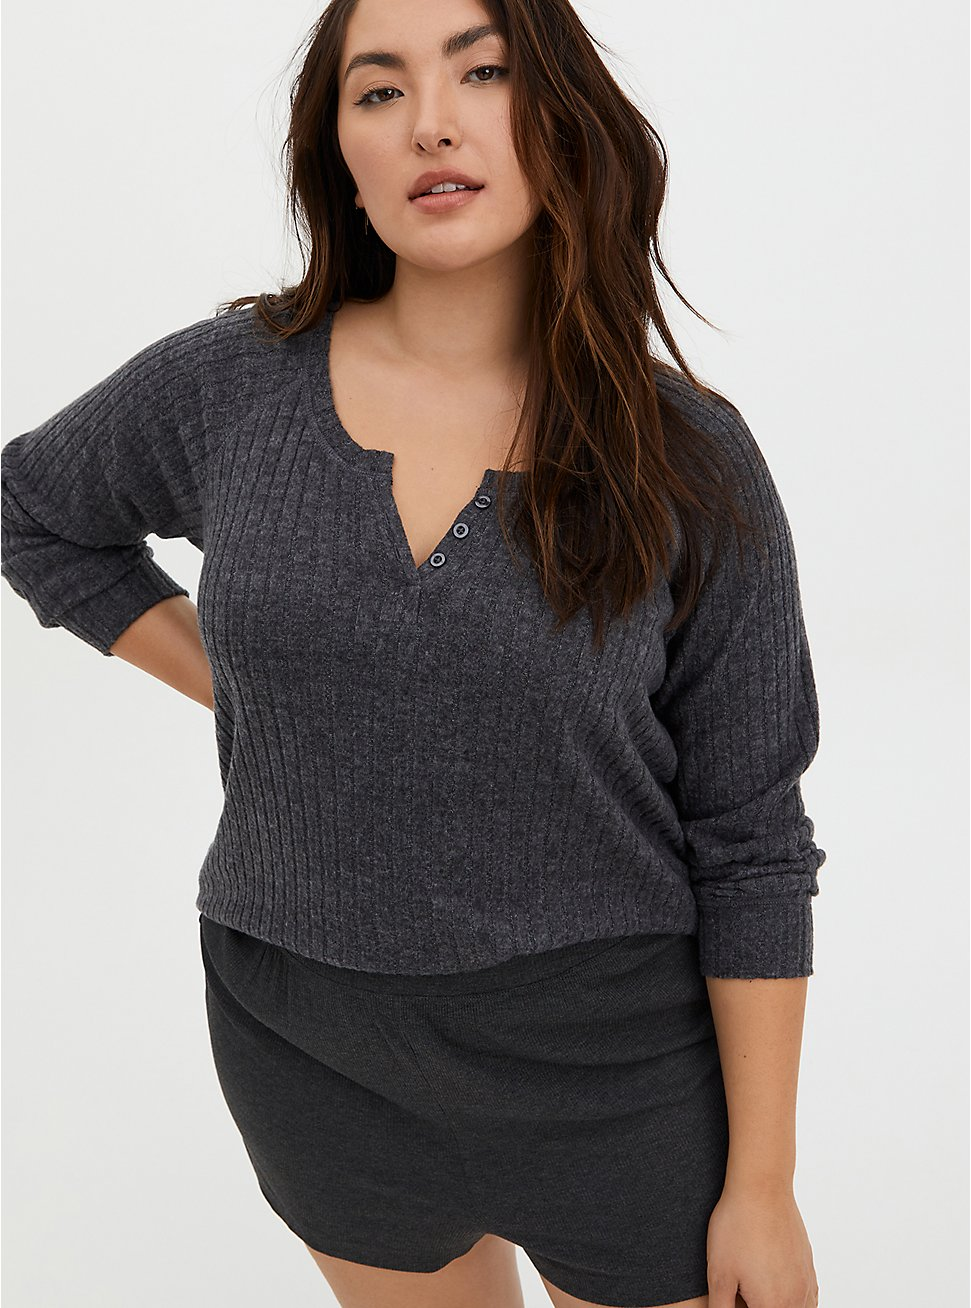 Super Soft Plush Charcoal Grey Brushed Rib Henley Sleep Tee, CHARCOAL  GREY, hi-res